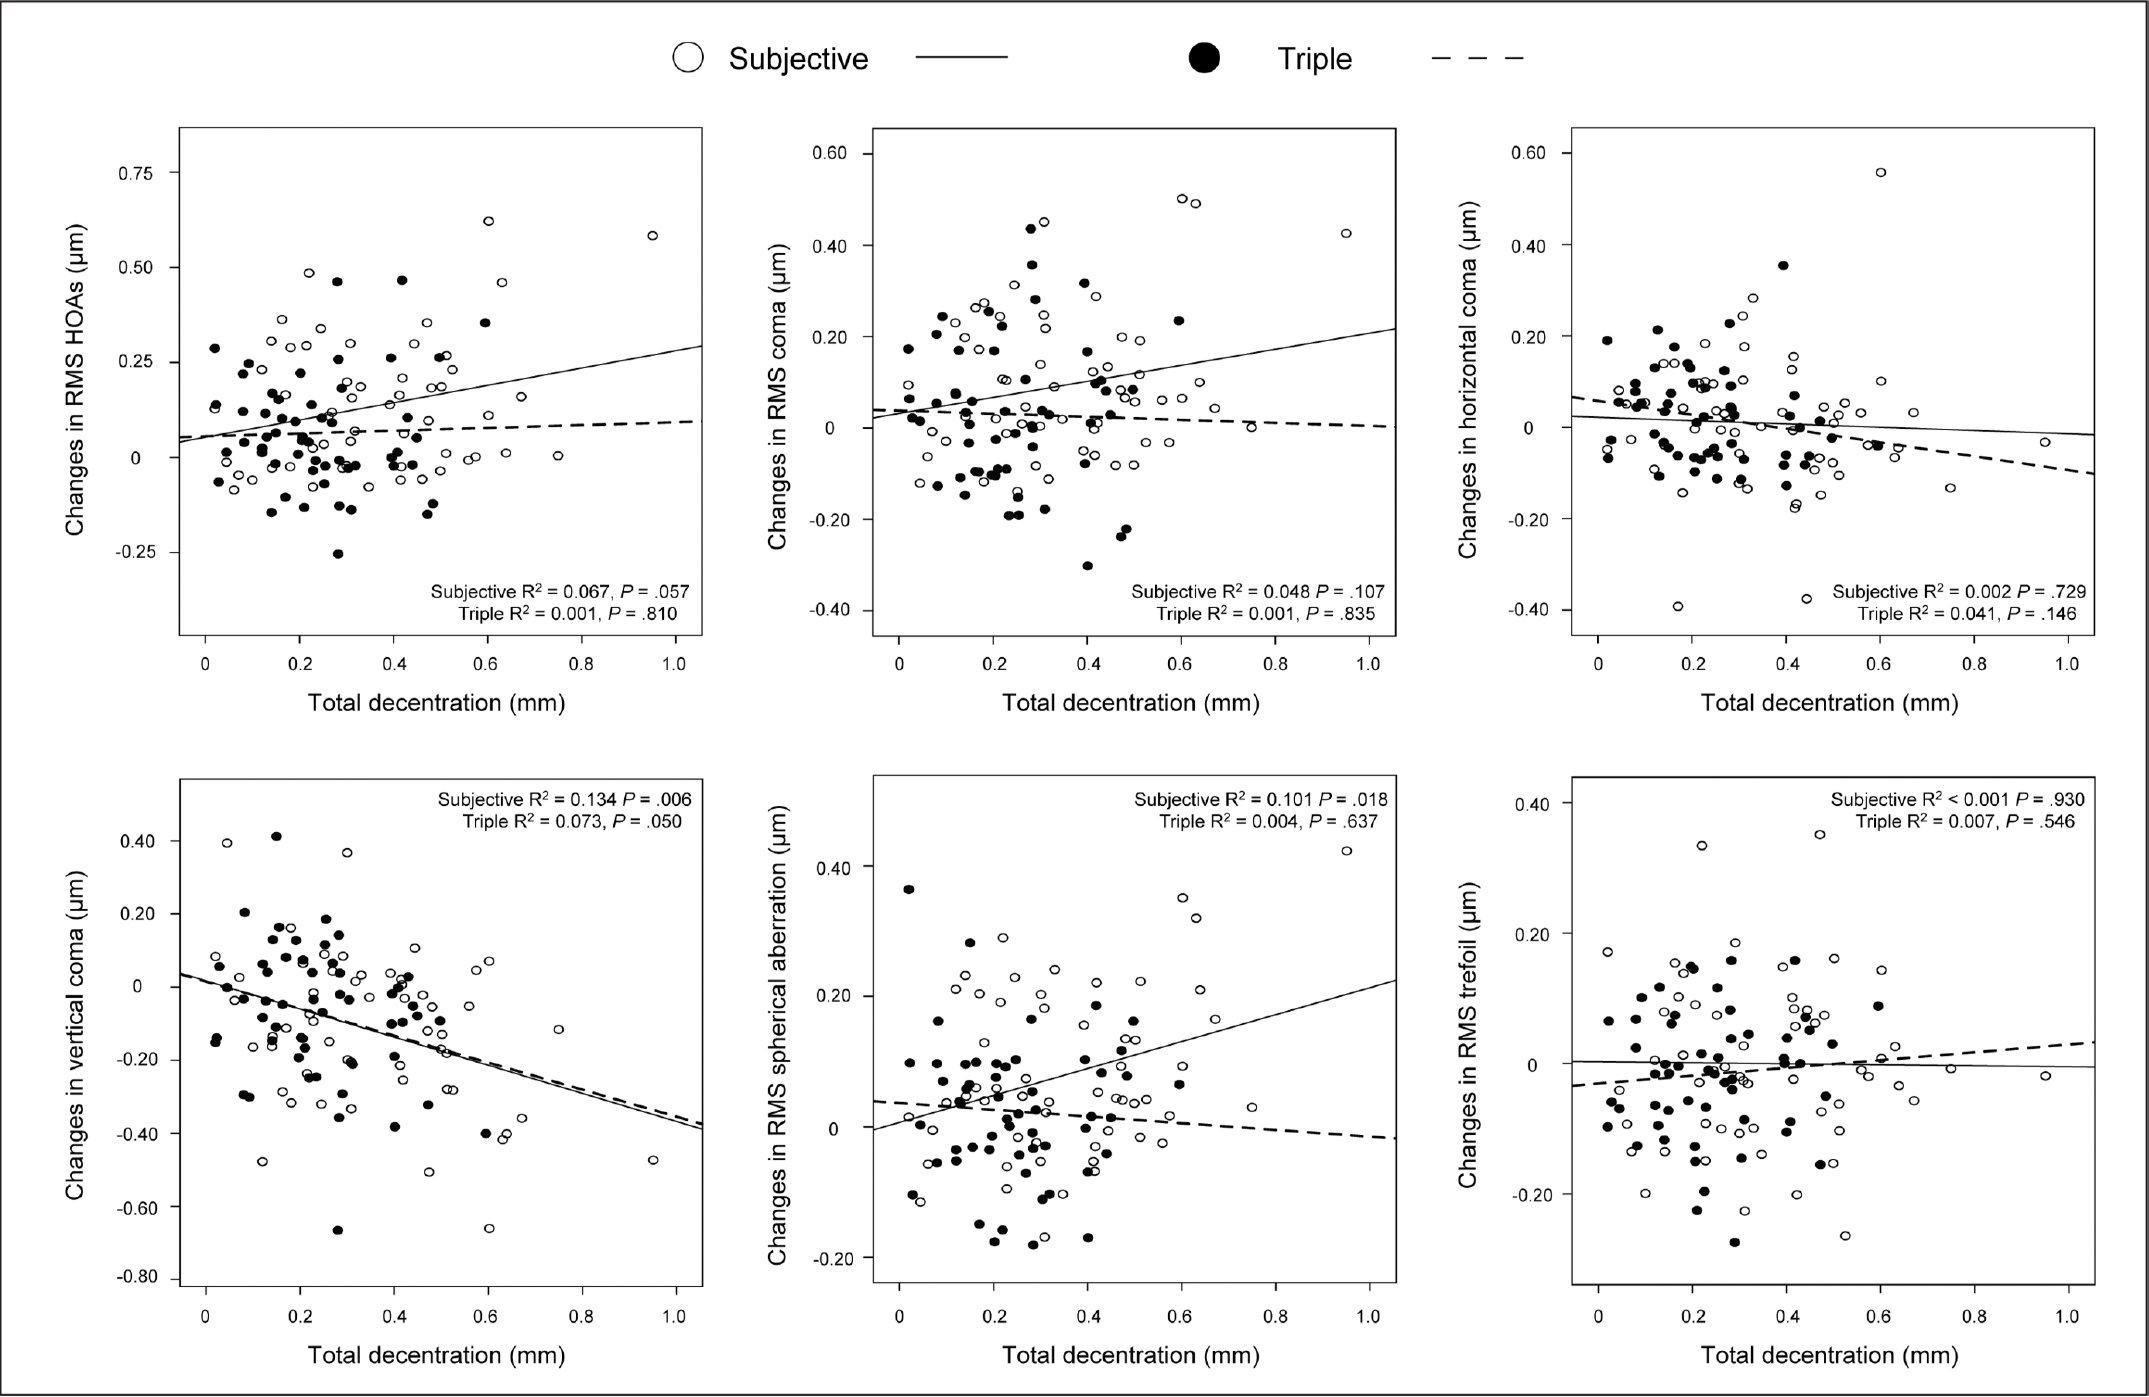 Relationship between the total decentered displacement and induced corneal higher order aberrations (HOAs) after subjective small incision lenticule extraction with the patient fixation method or triple marking centration method.